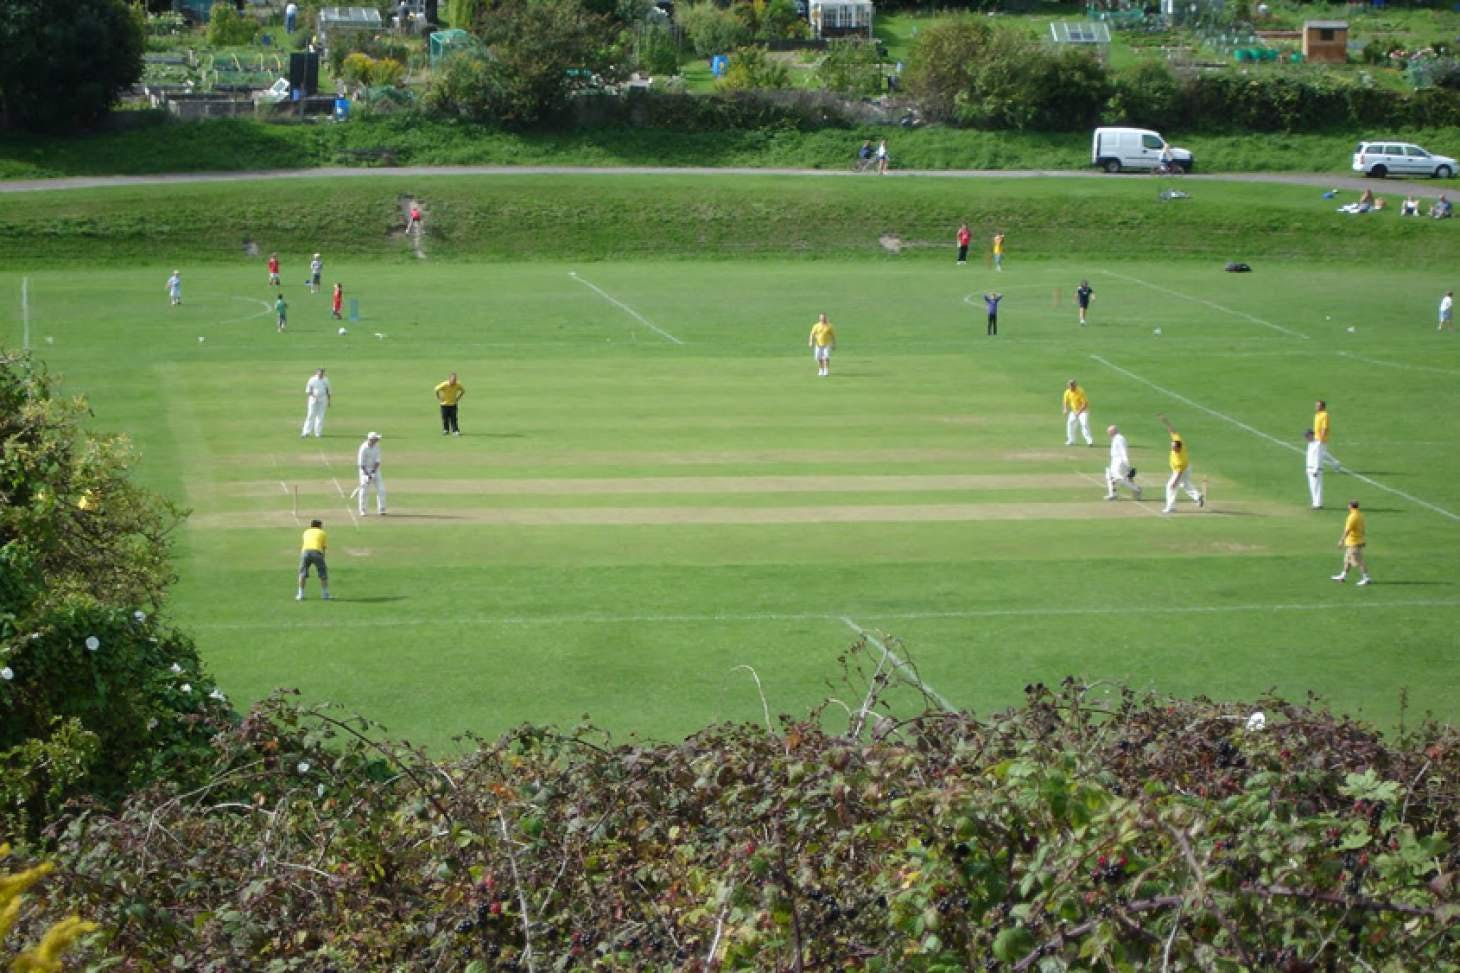 Braypool Recreation Ground Full size | Grass cricket facilities